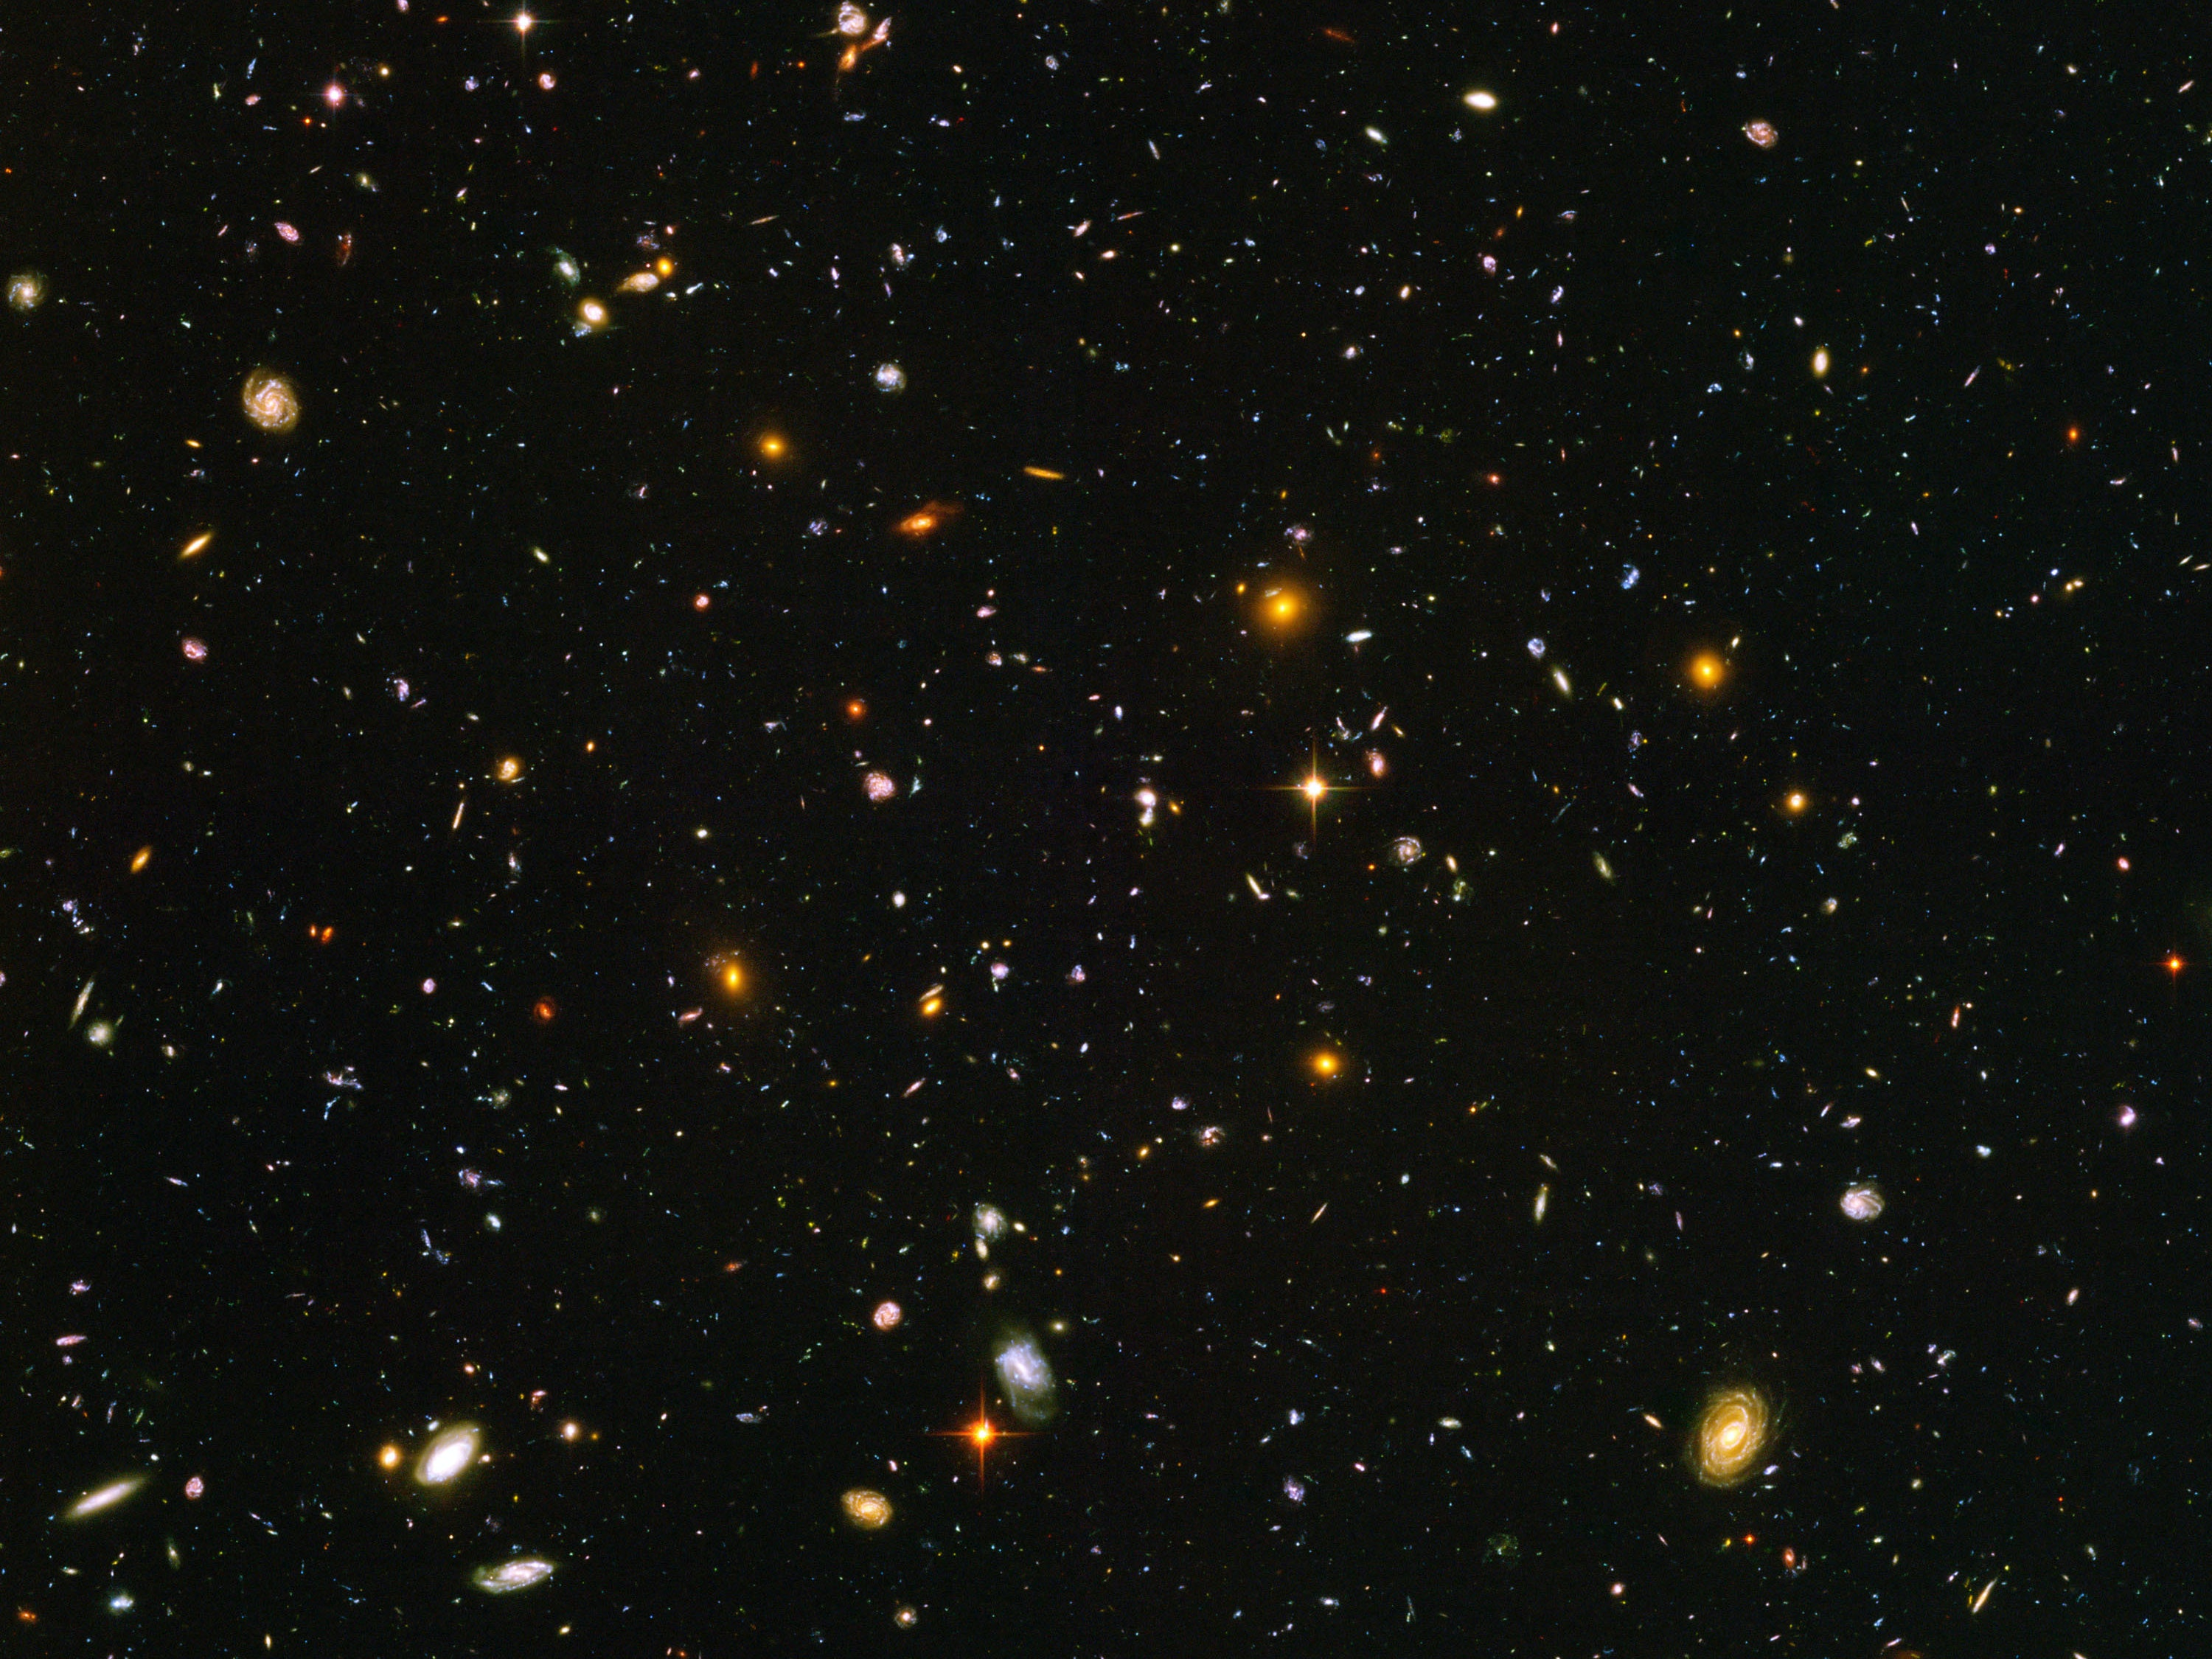 A view of nearly 10,000 galaxies are seen in a Hubble Telescope composite photograph released March 9, 2004. The Hubble Ultra Deep Field (HUDF) photograph is a composite of a million one-second exposures and reveals galaxies from the time shortly after the big bang.  (Photo by NASA/Getty Images)